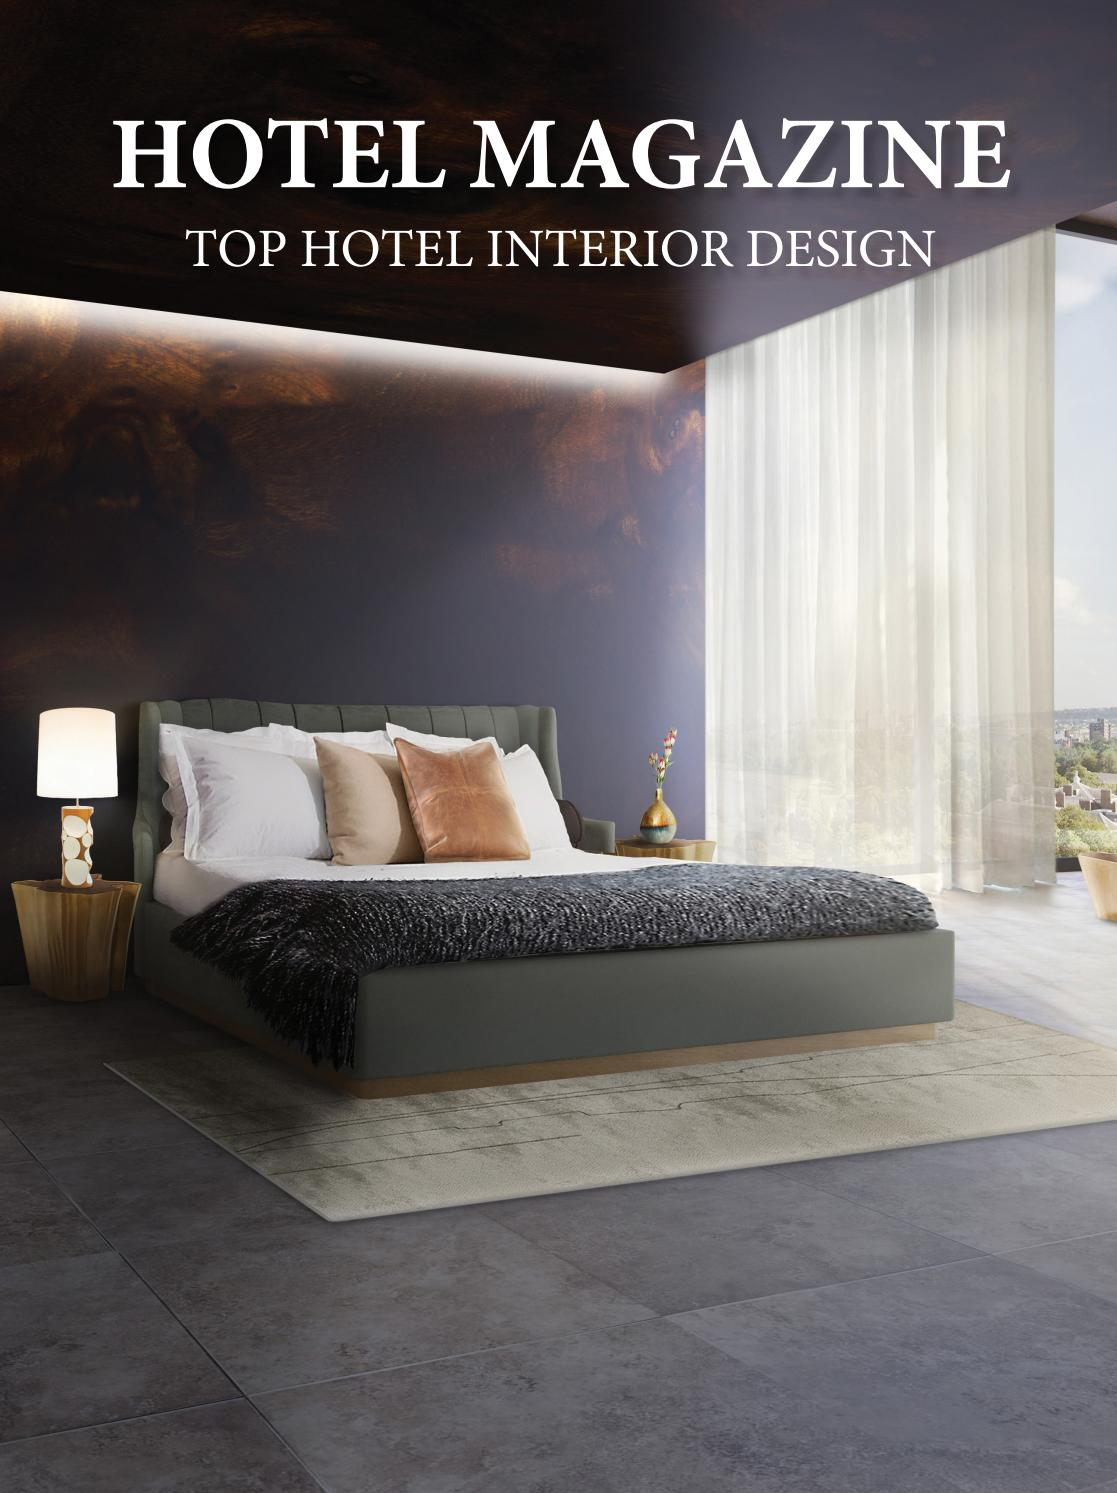 Hotel magazine top hotels interior design by home - Best interior decorating magazines ...